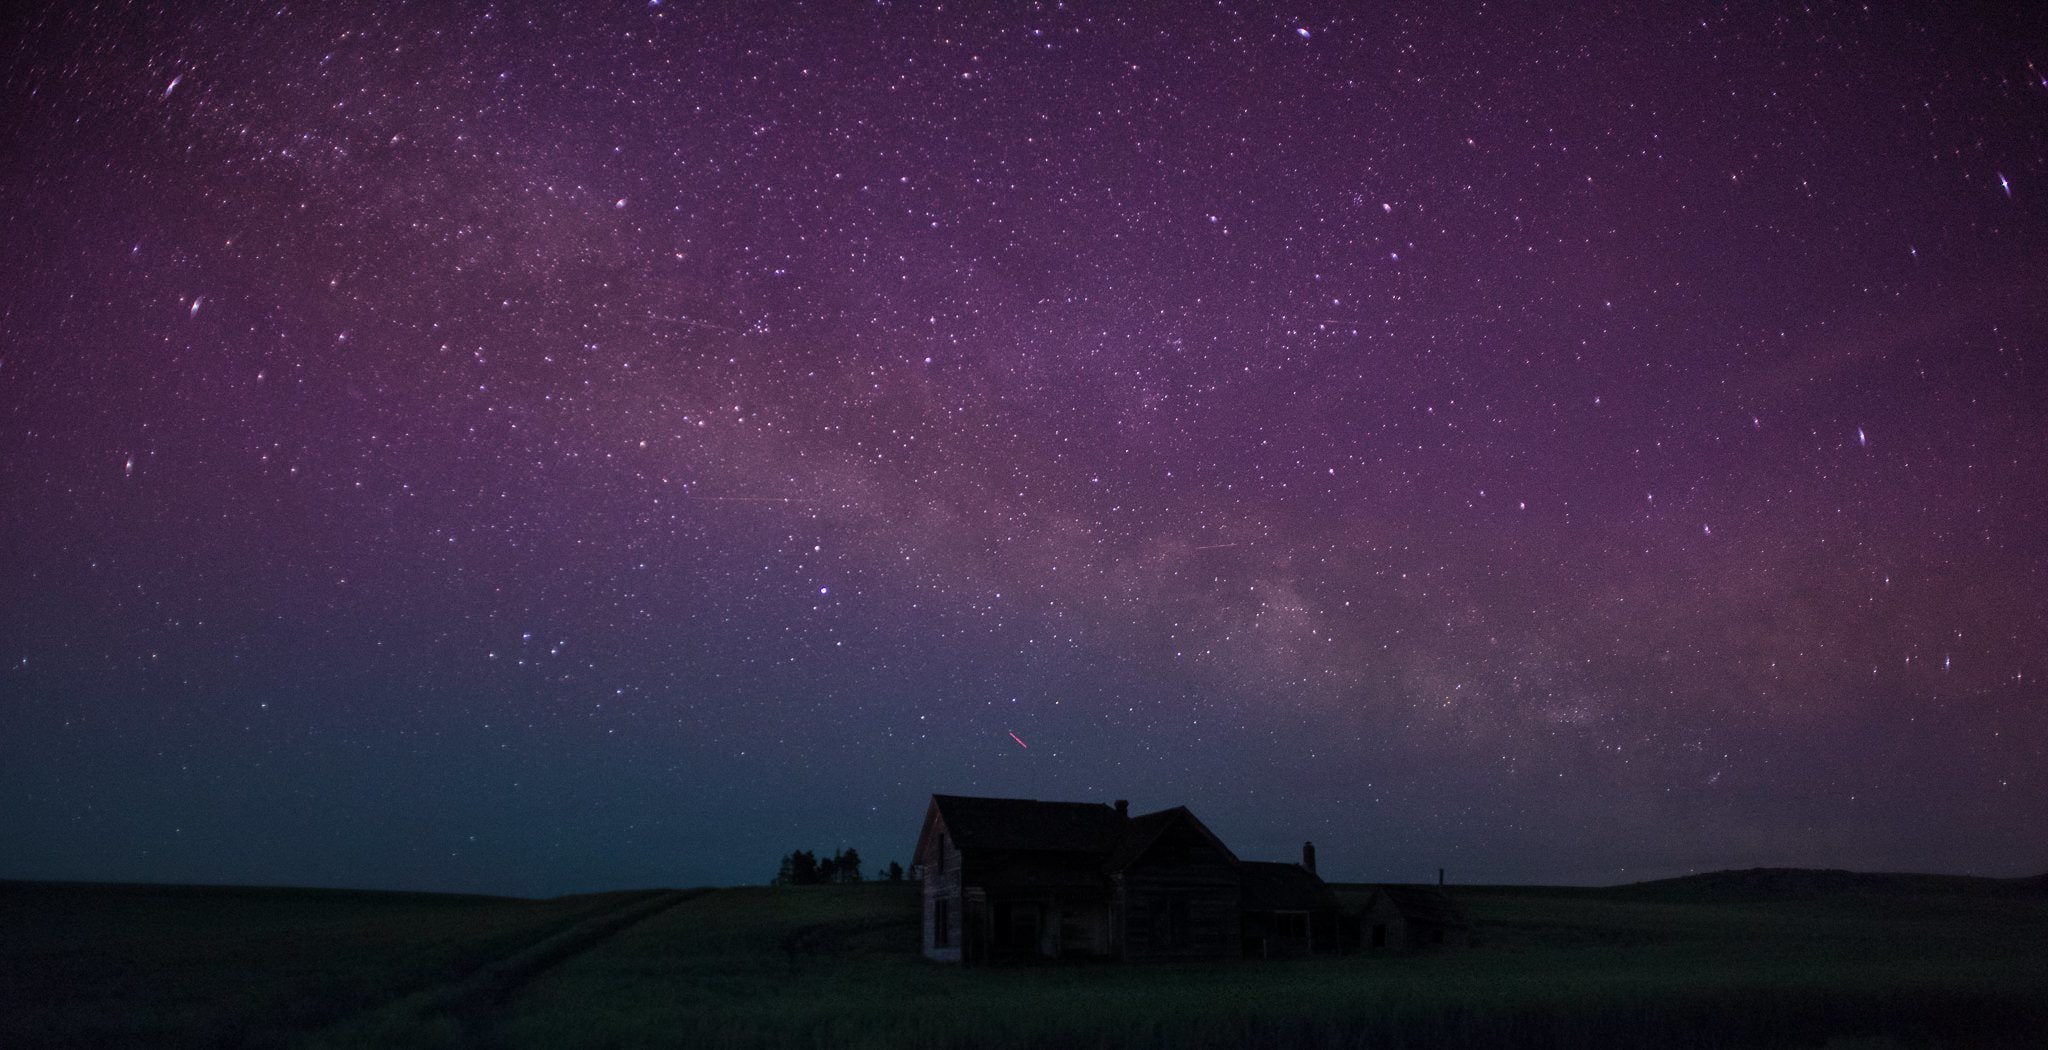 House Below The Milky Way